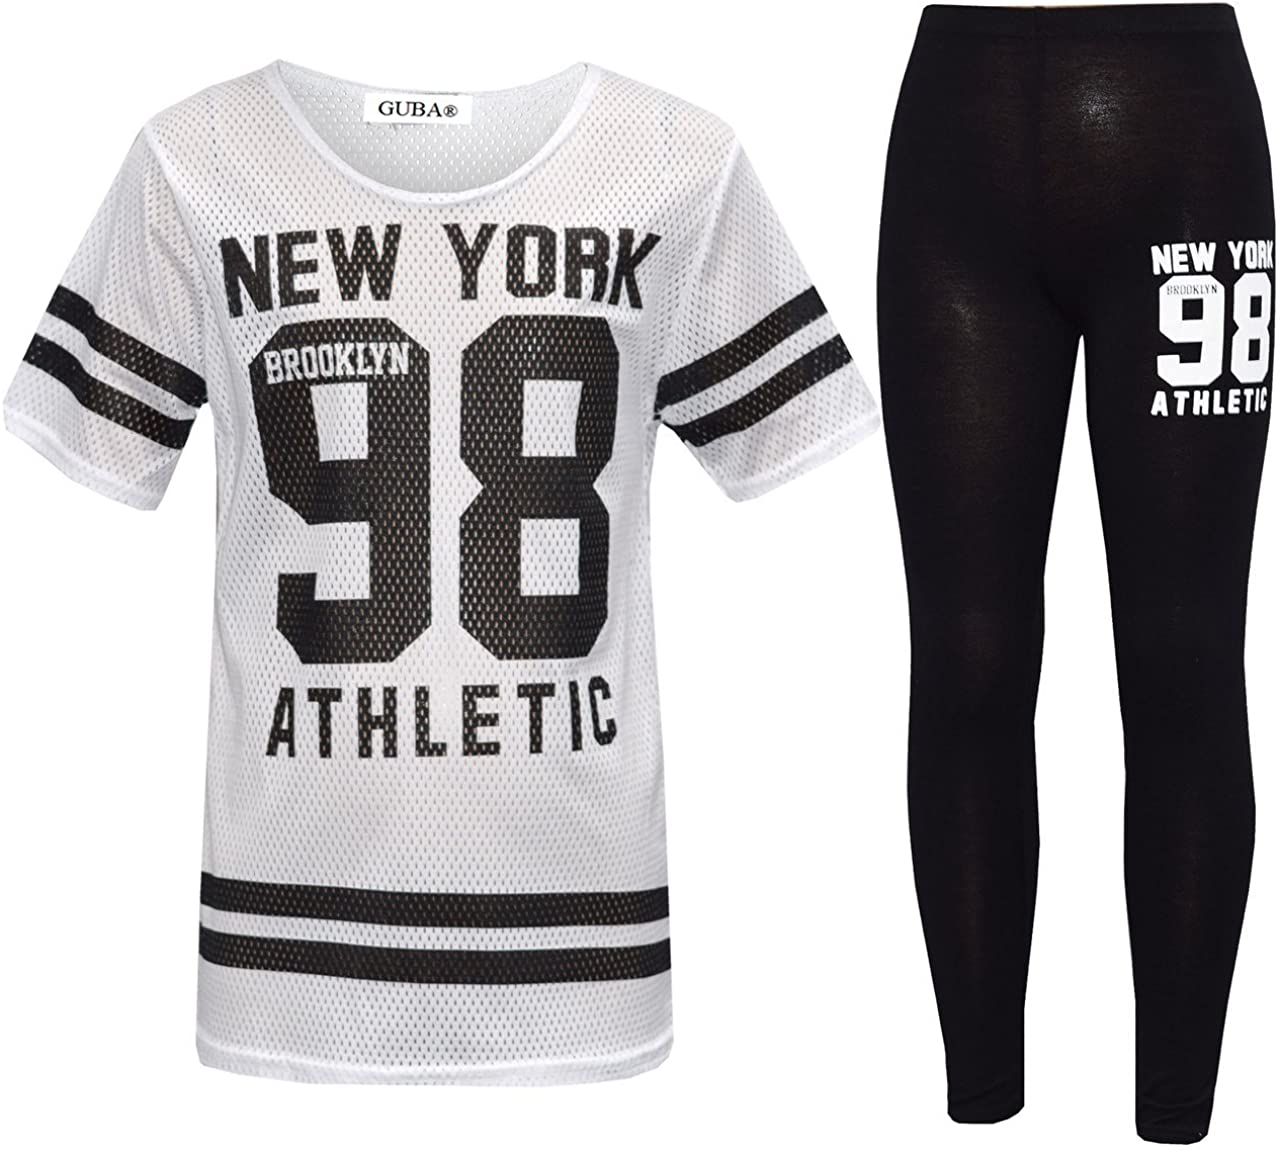 Girls New York 98 NET TOP /& Legging Set Kids 2 Pieces Fashion Outfits Age 7-13 Years 13 Years, White